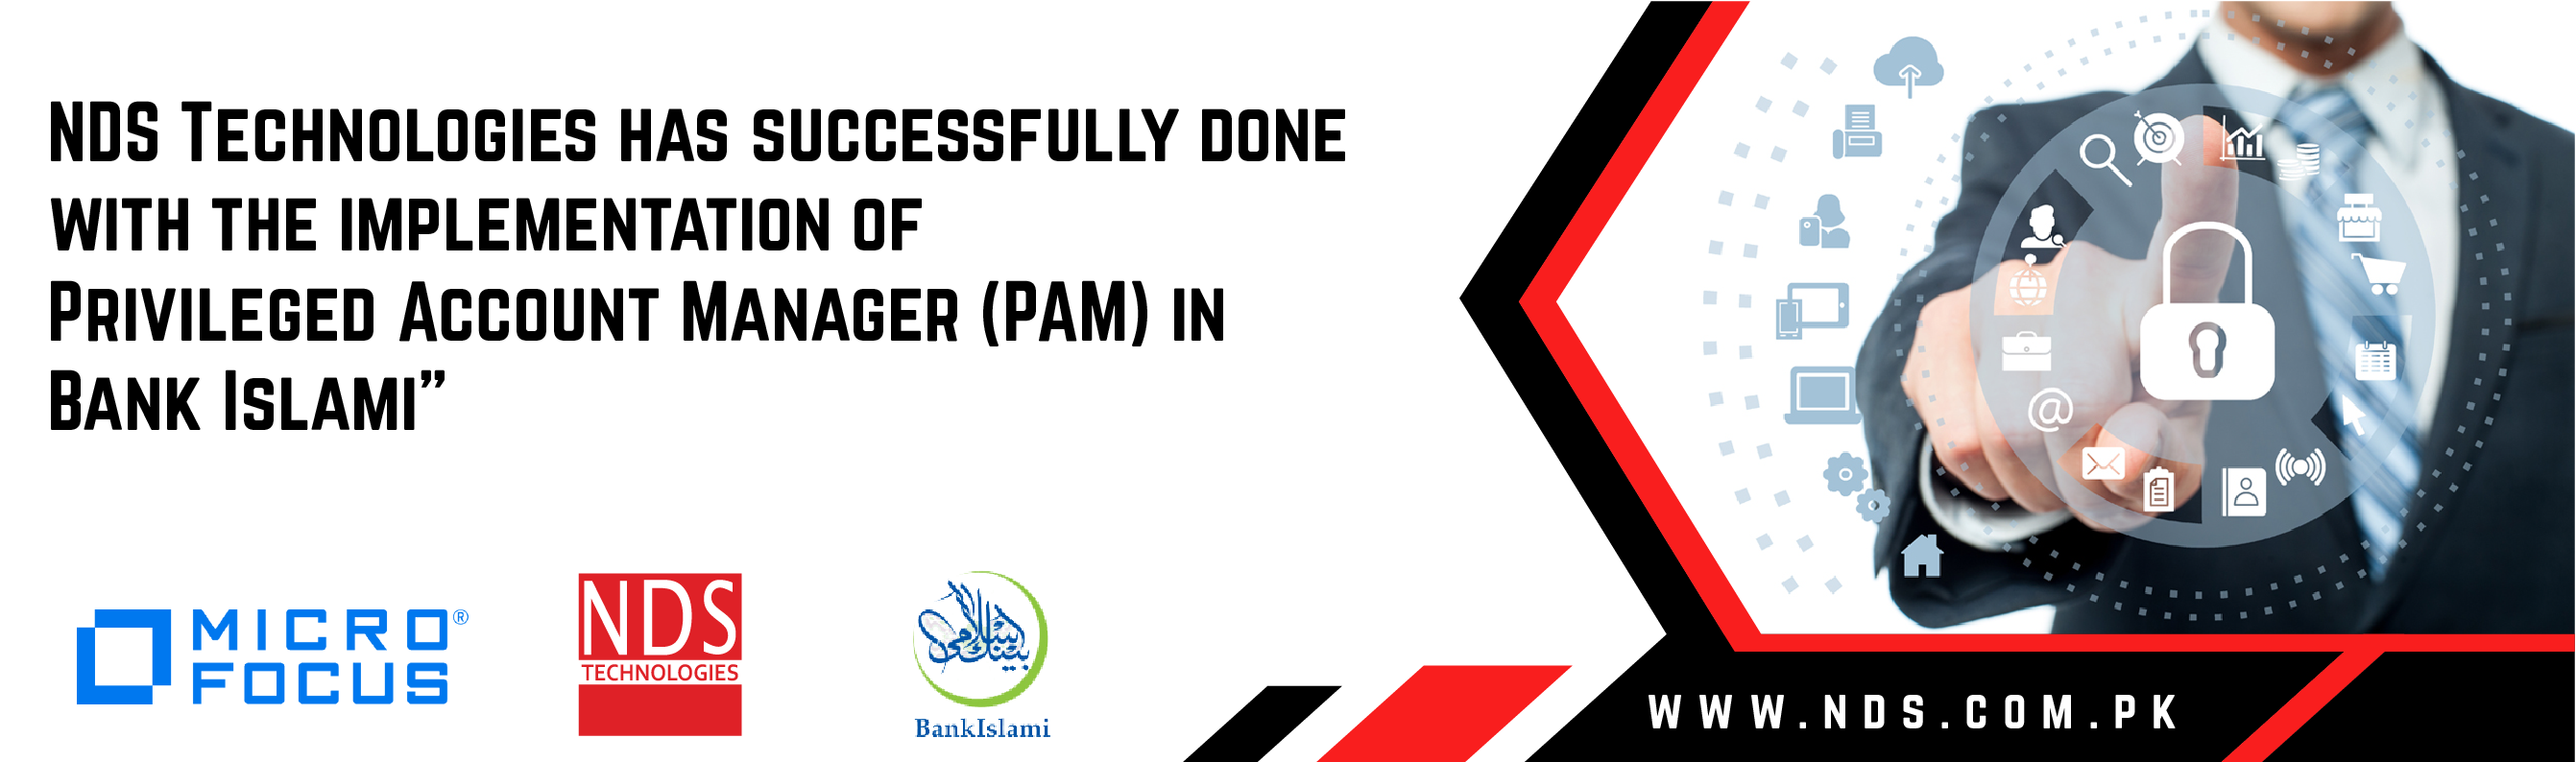 Successful implementation of Privileged Account Manager (PAM) in Bank Islami By NDS Technologies